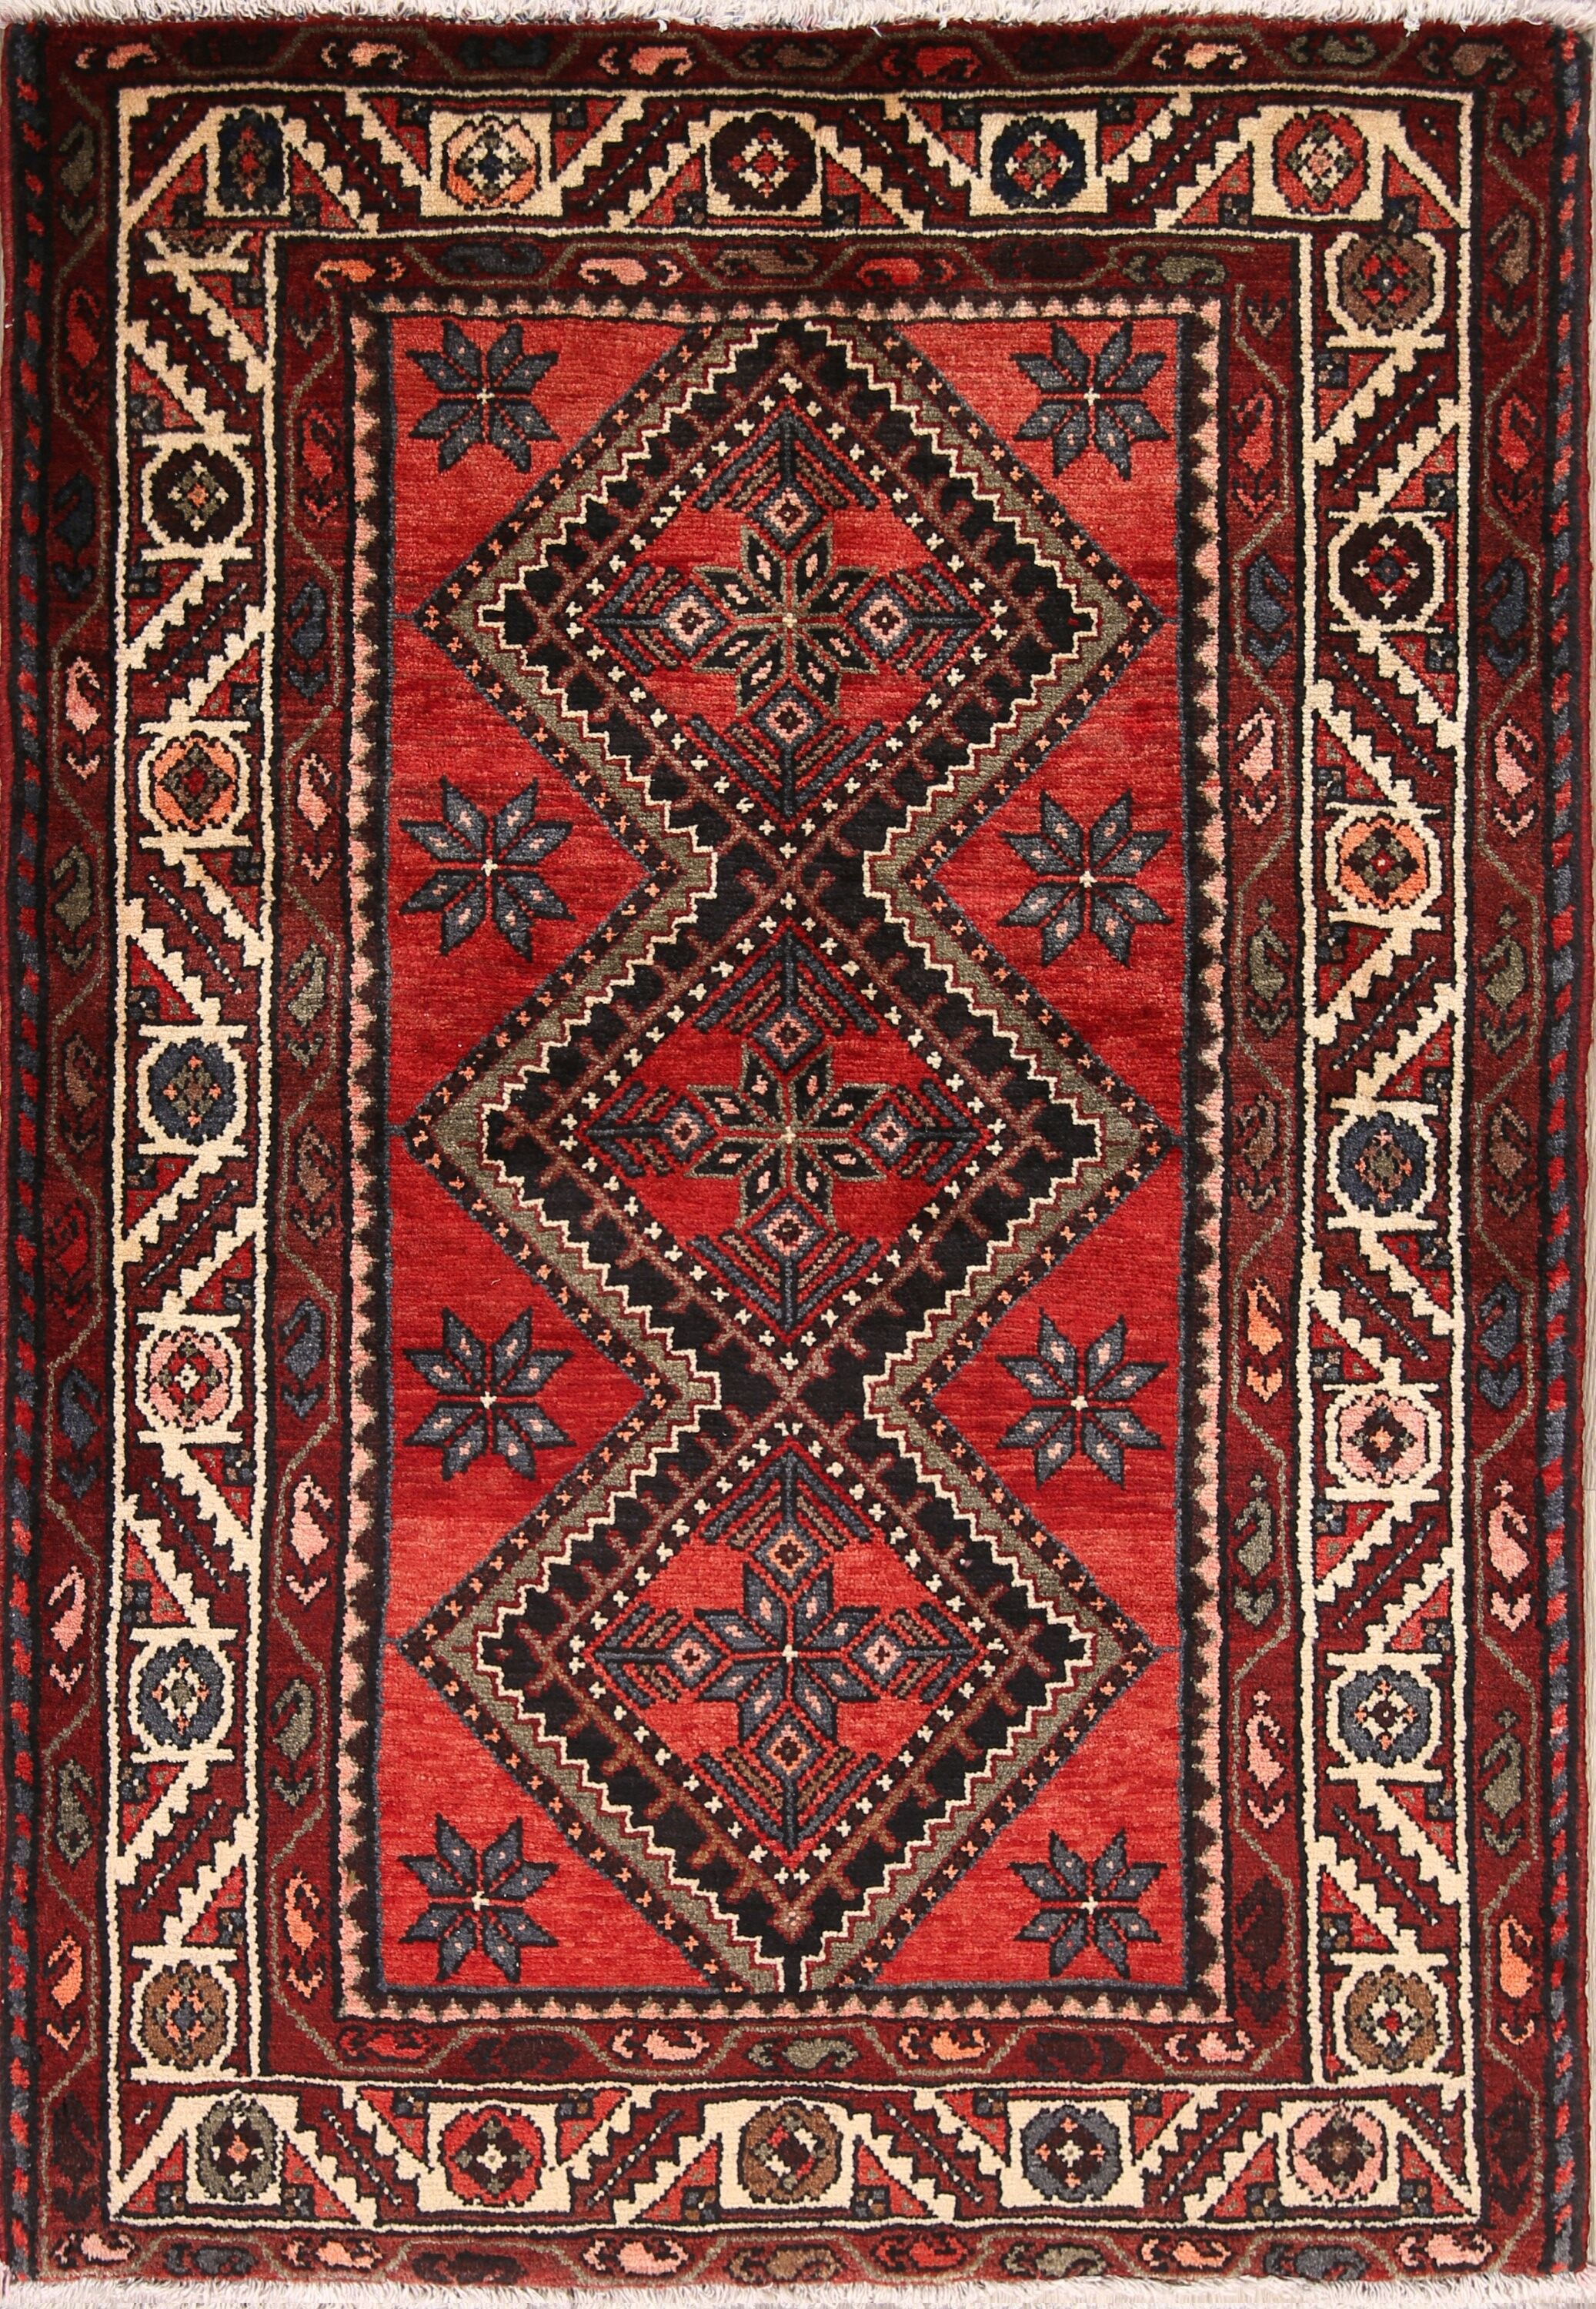 One-of-a-Kind Geometric Bakhtiari Persian Hand-Knotted 3'8